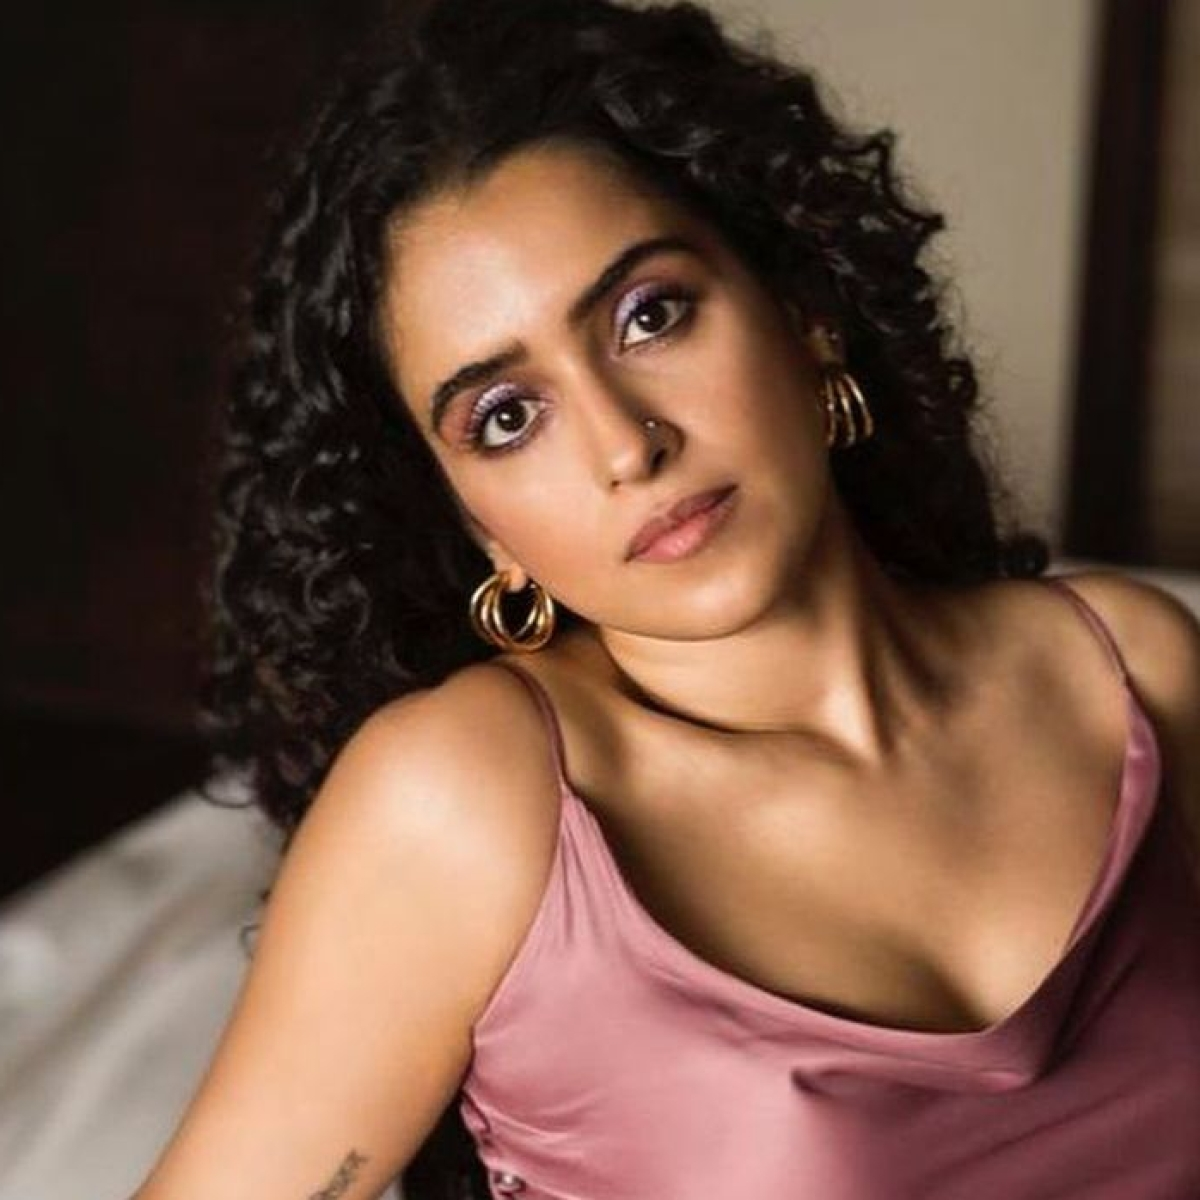 'I am single and ready for marriage': Sanya Malhotra describes her ideal partner